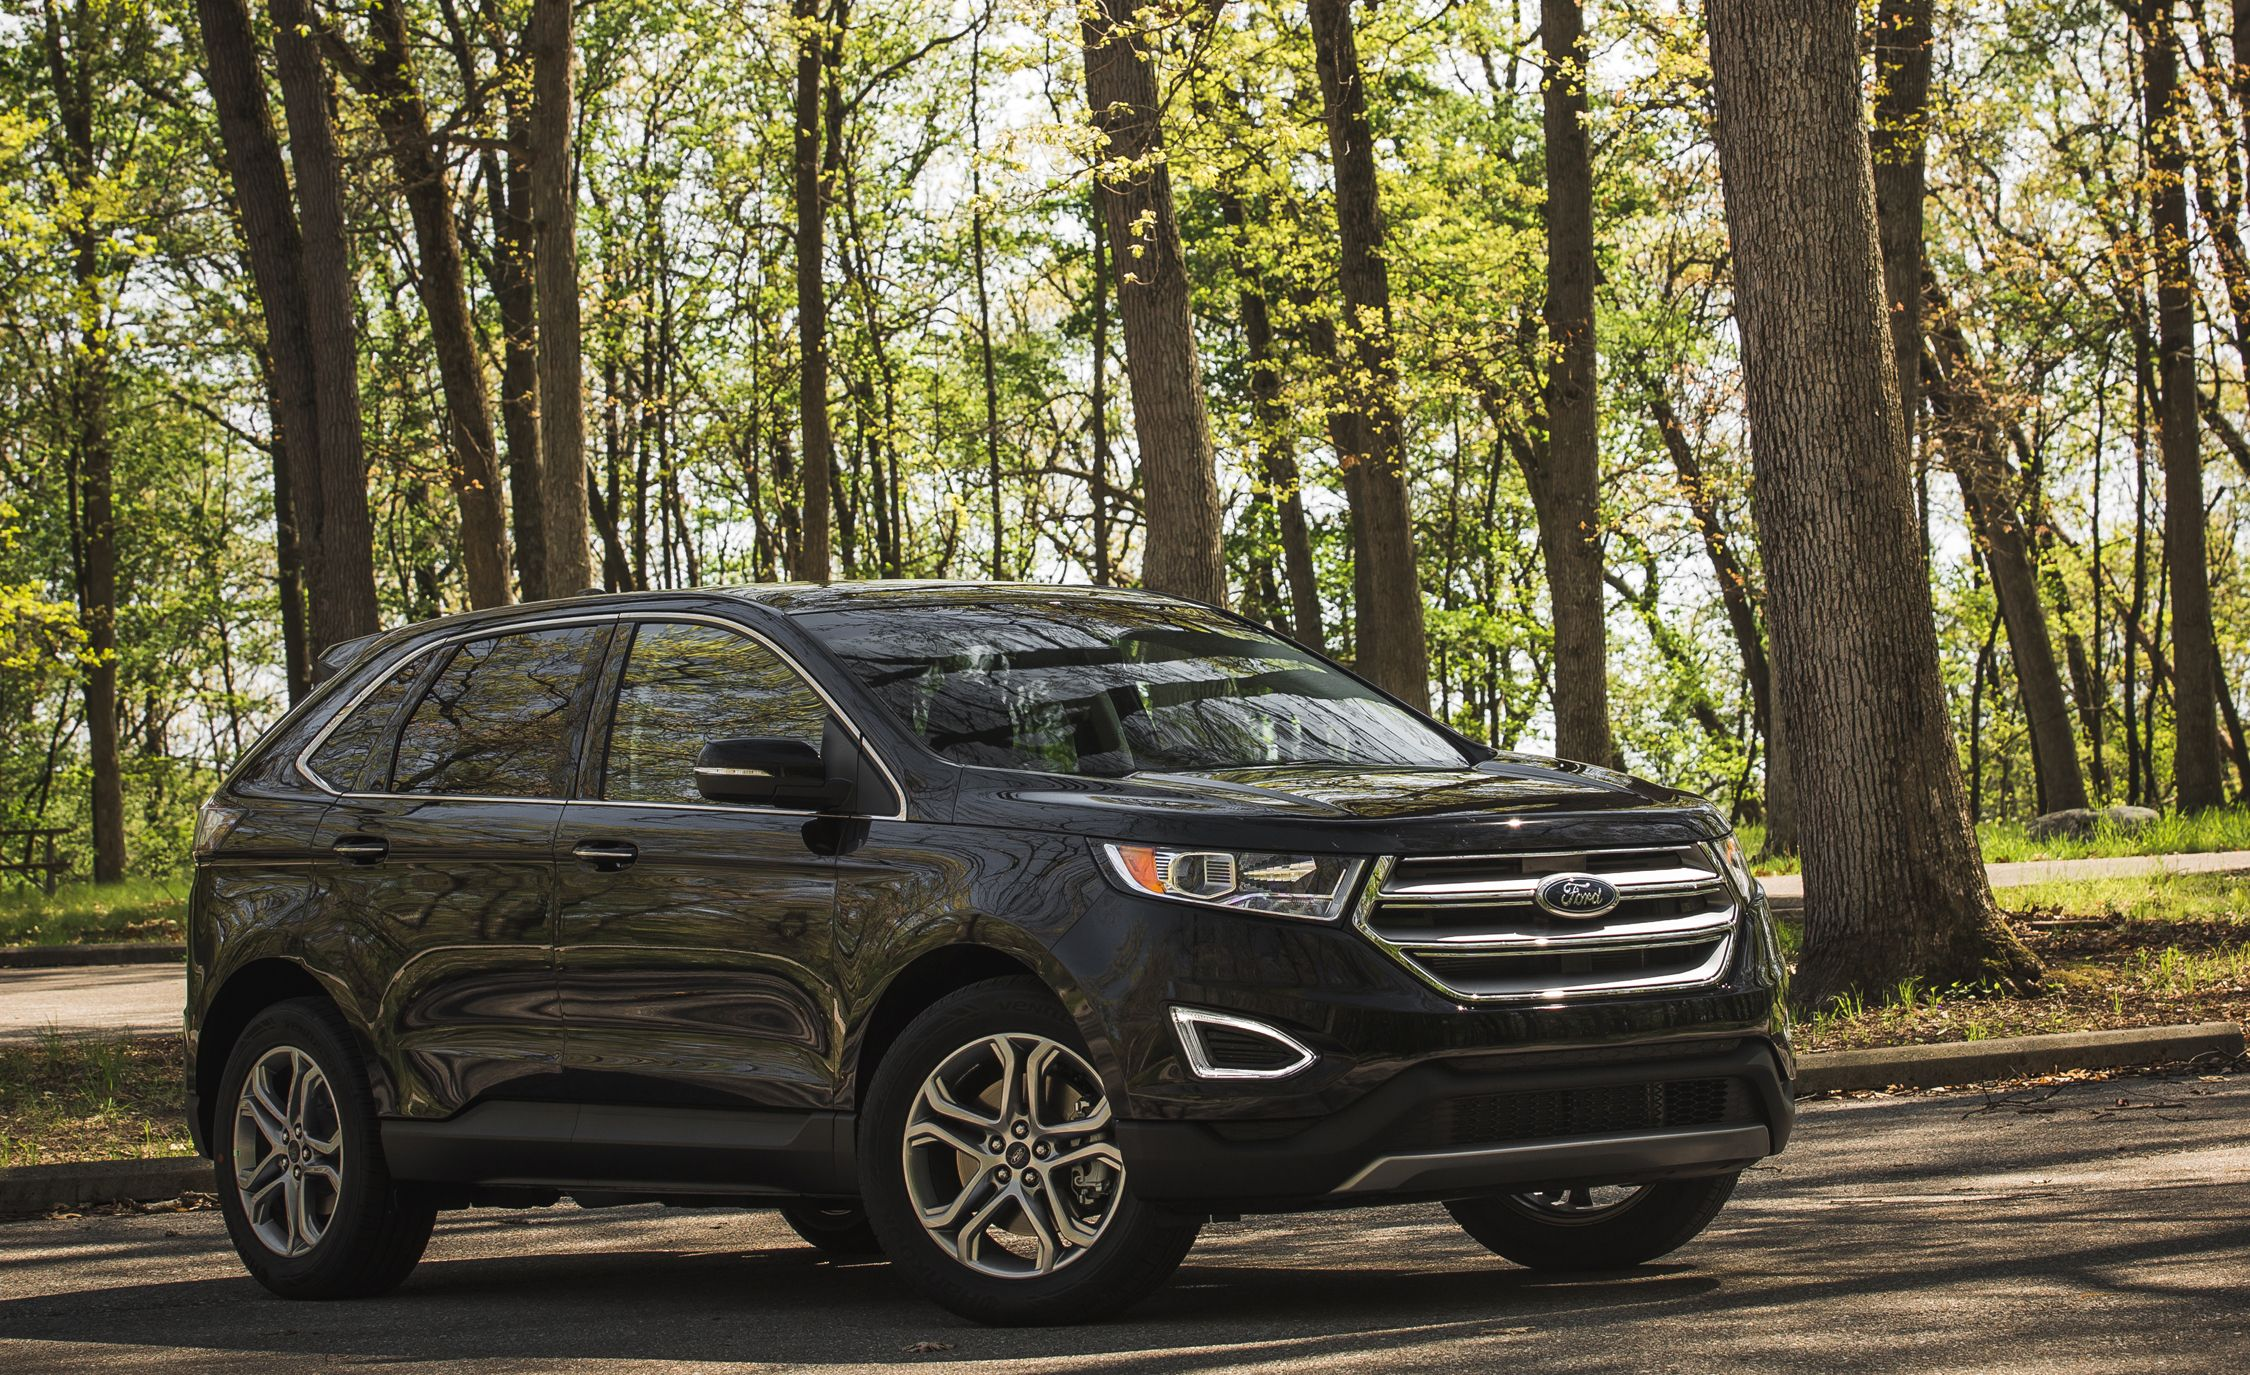 Fuel Economy Gov >> 2018 Ford Edge | Fuel Economy Review | Car and Driver